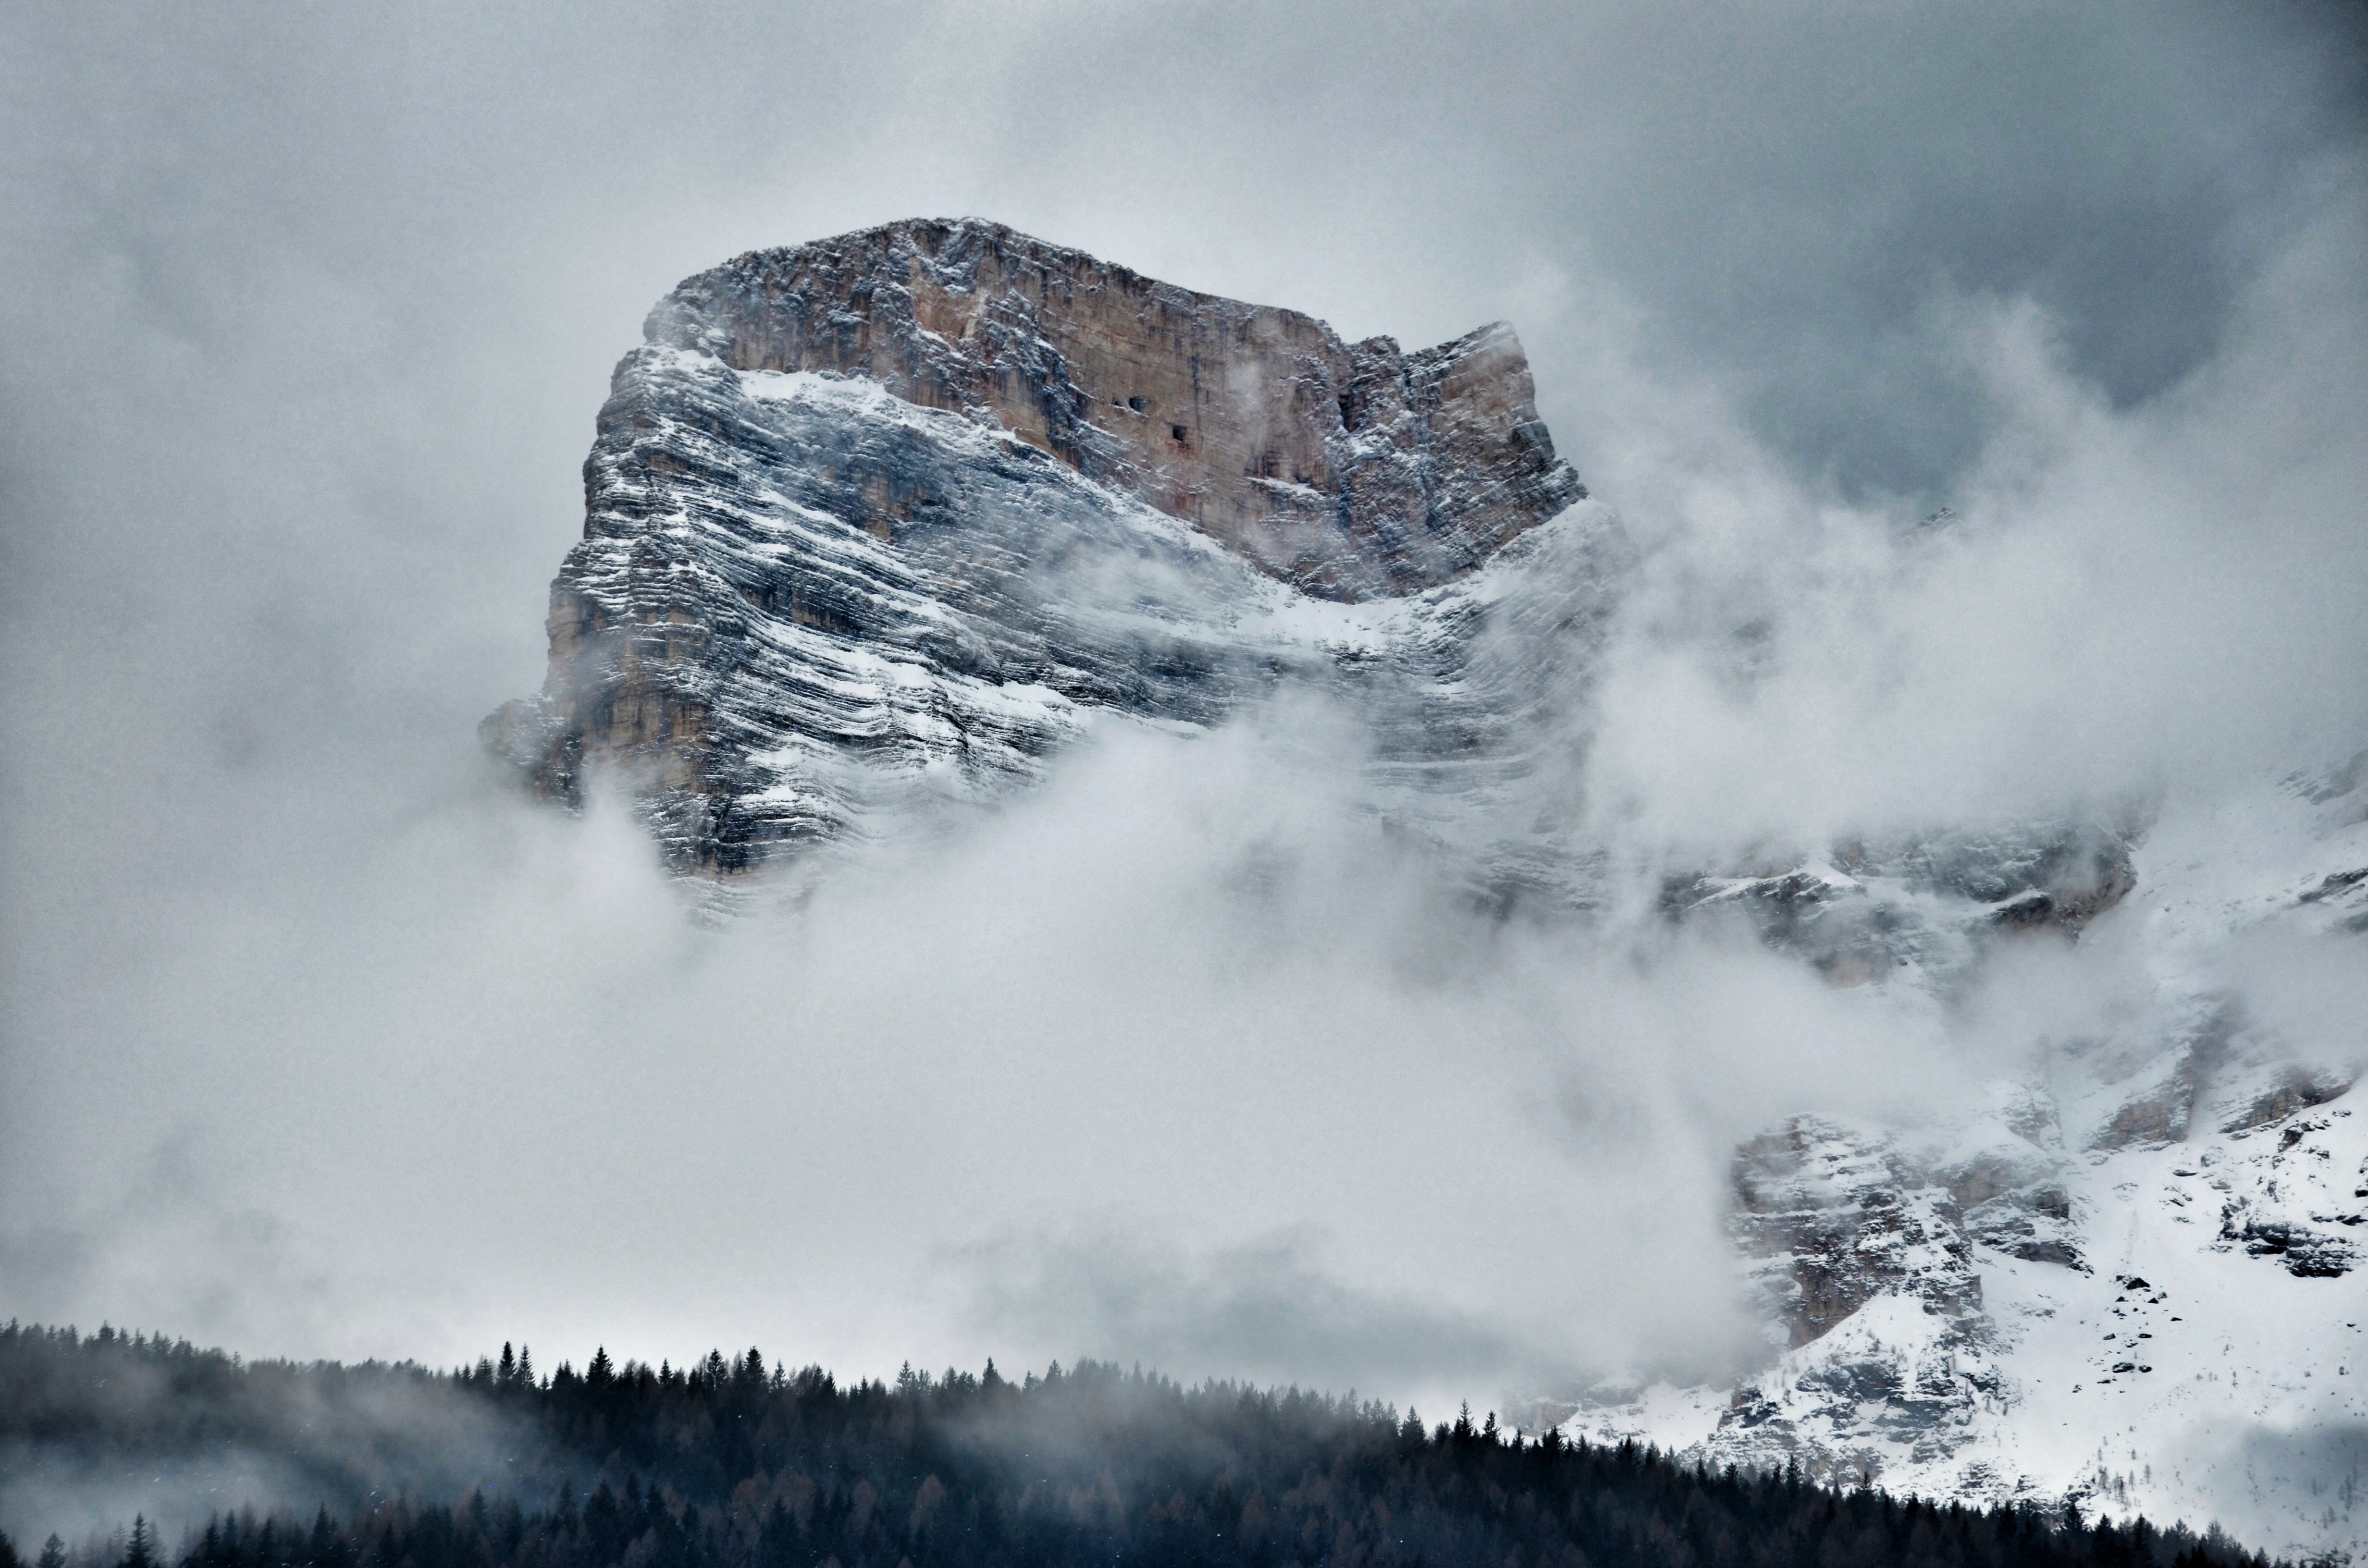 Landscape Photo of a Mountain, Clouds, Mountain peak, Trees, Snow, HQ Photo